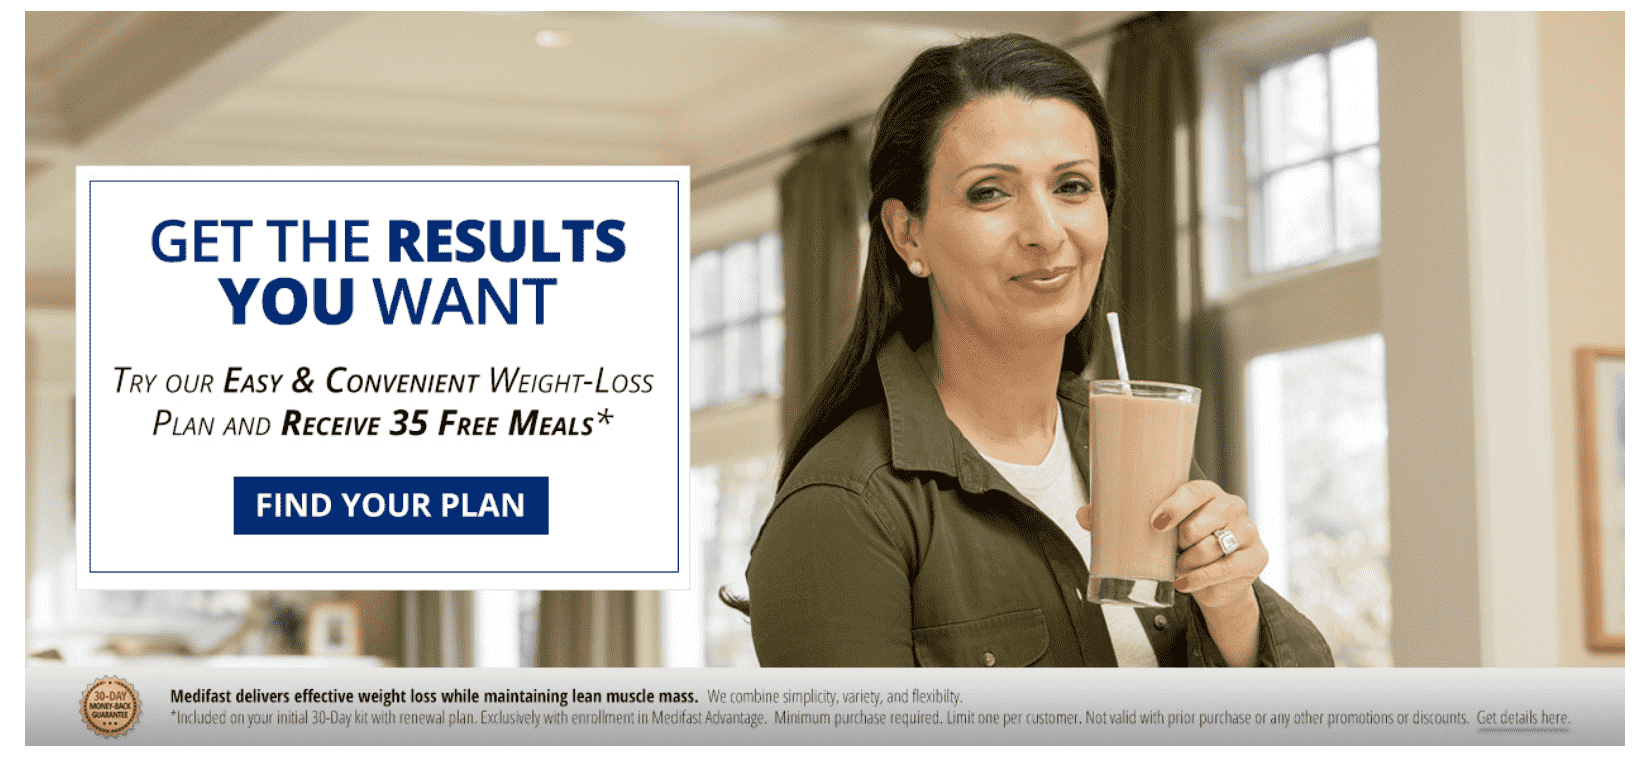 Medifast Diet Reviews Weight Loss Promise - Your Online Revenue-min